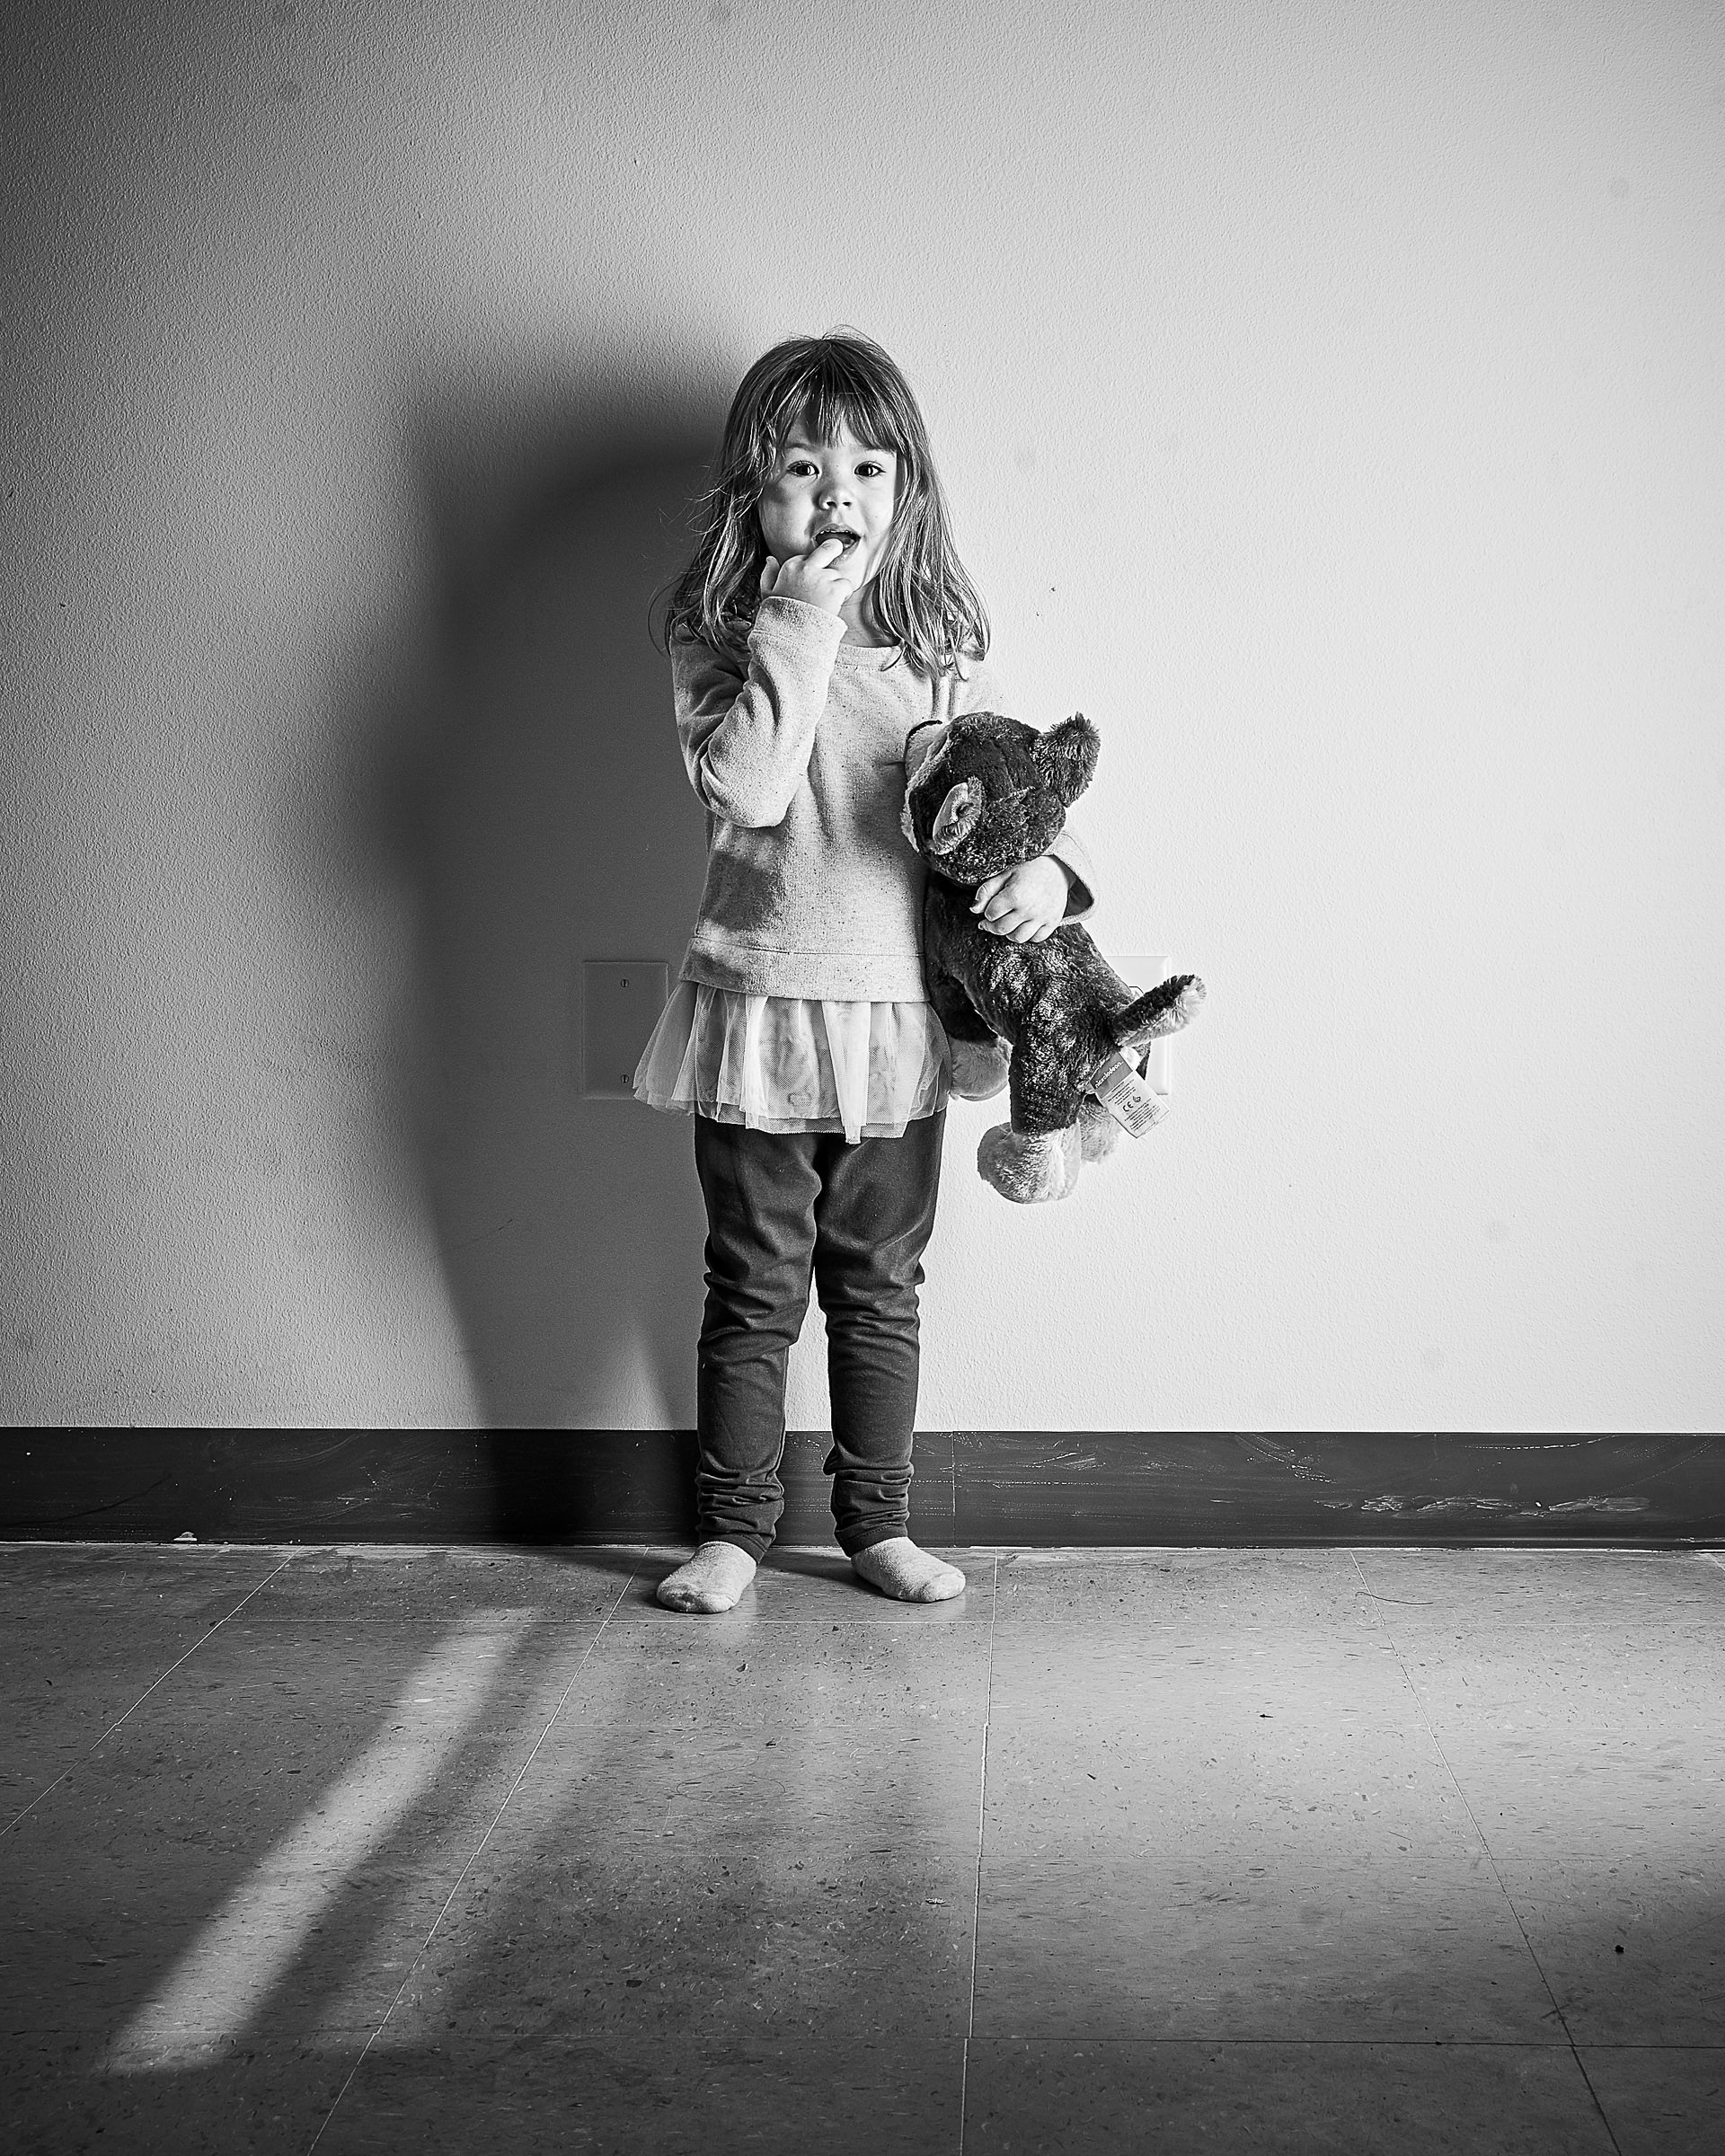 2018-12-15-Puls Familly4858-bw-proofs-retouched web.jpg